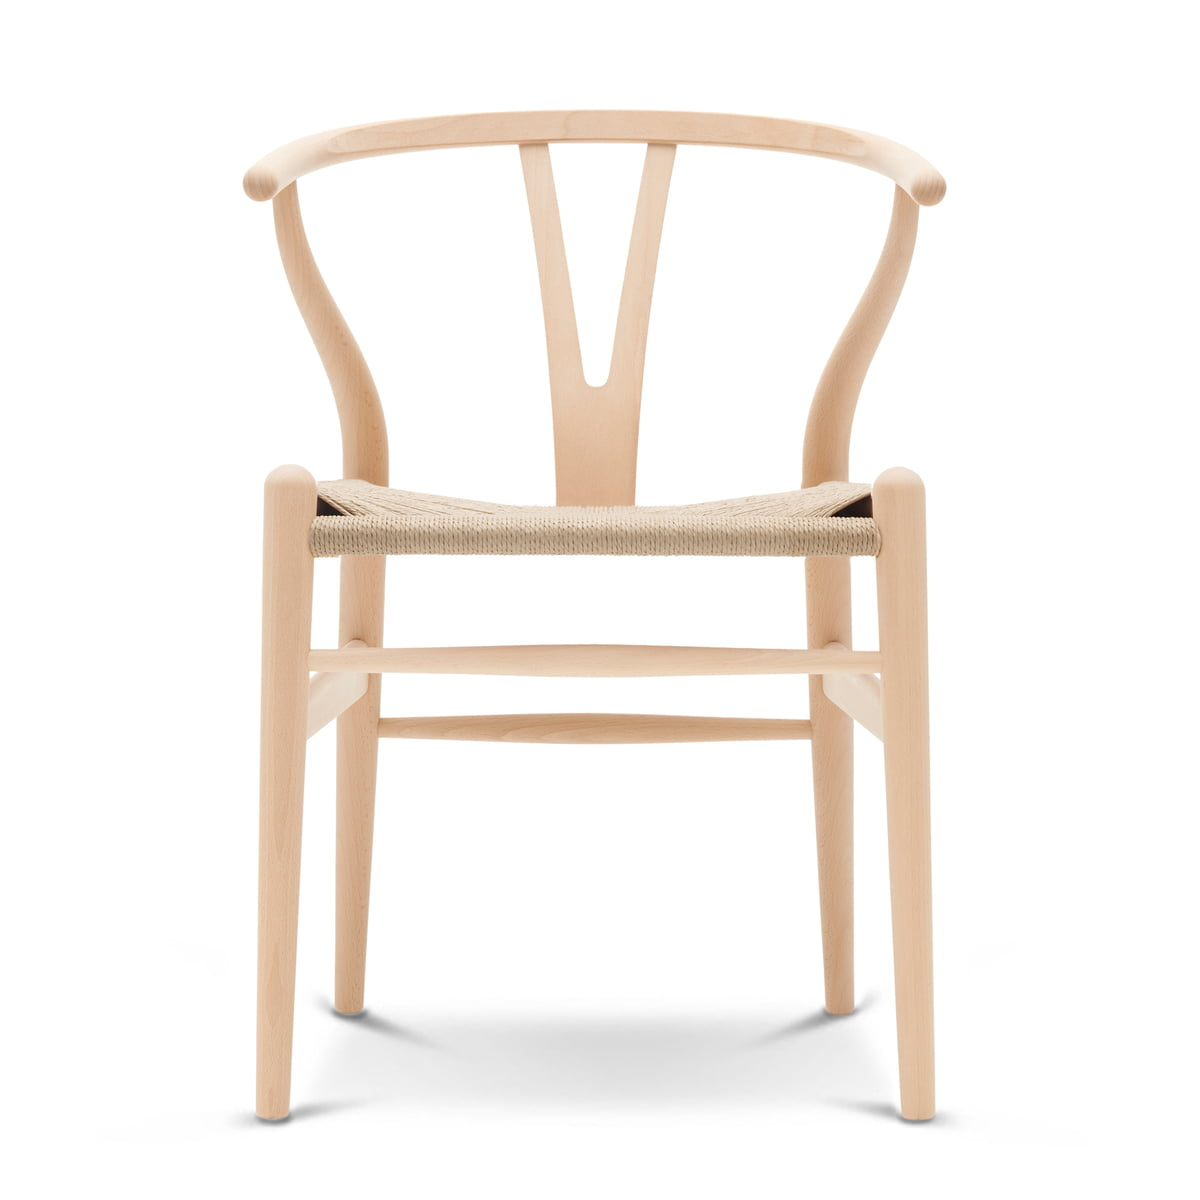 Carl Hansen - CH24 Wishbone Chair, Buche geseift / Naturgeflecht